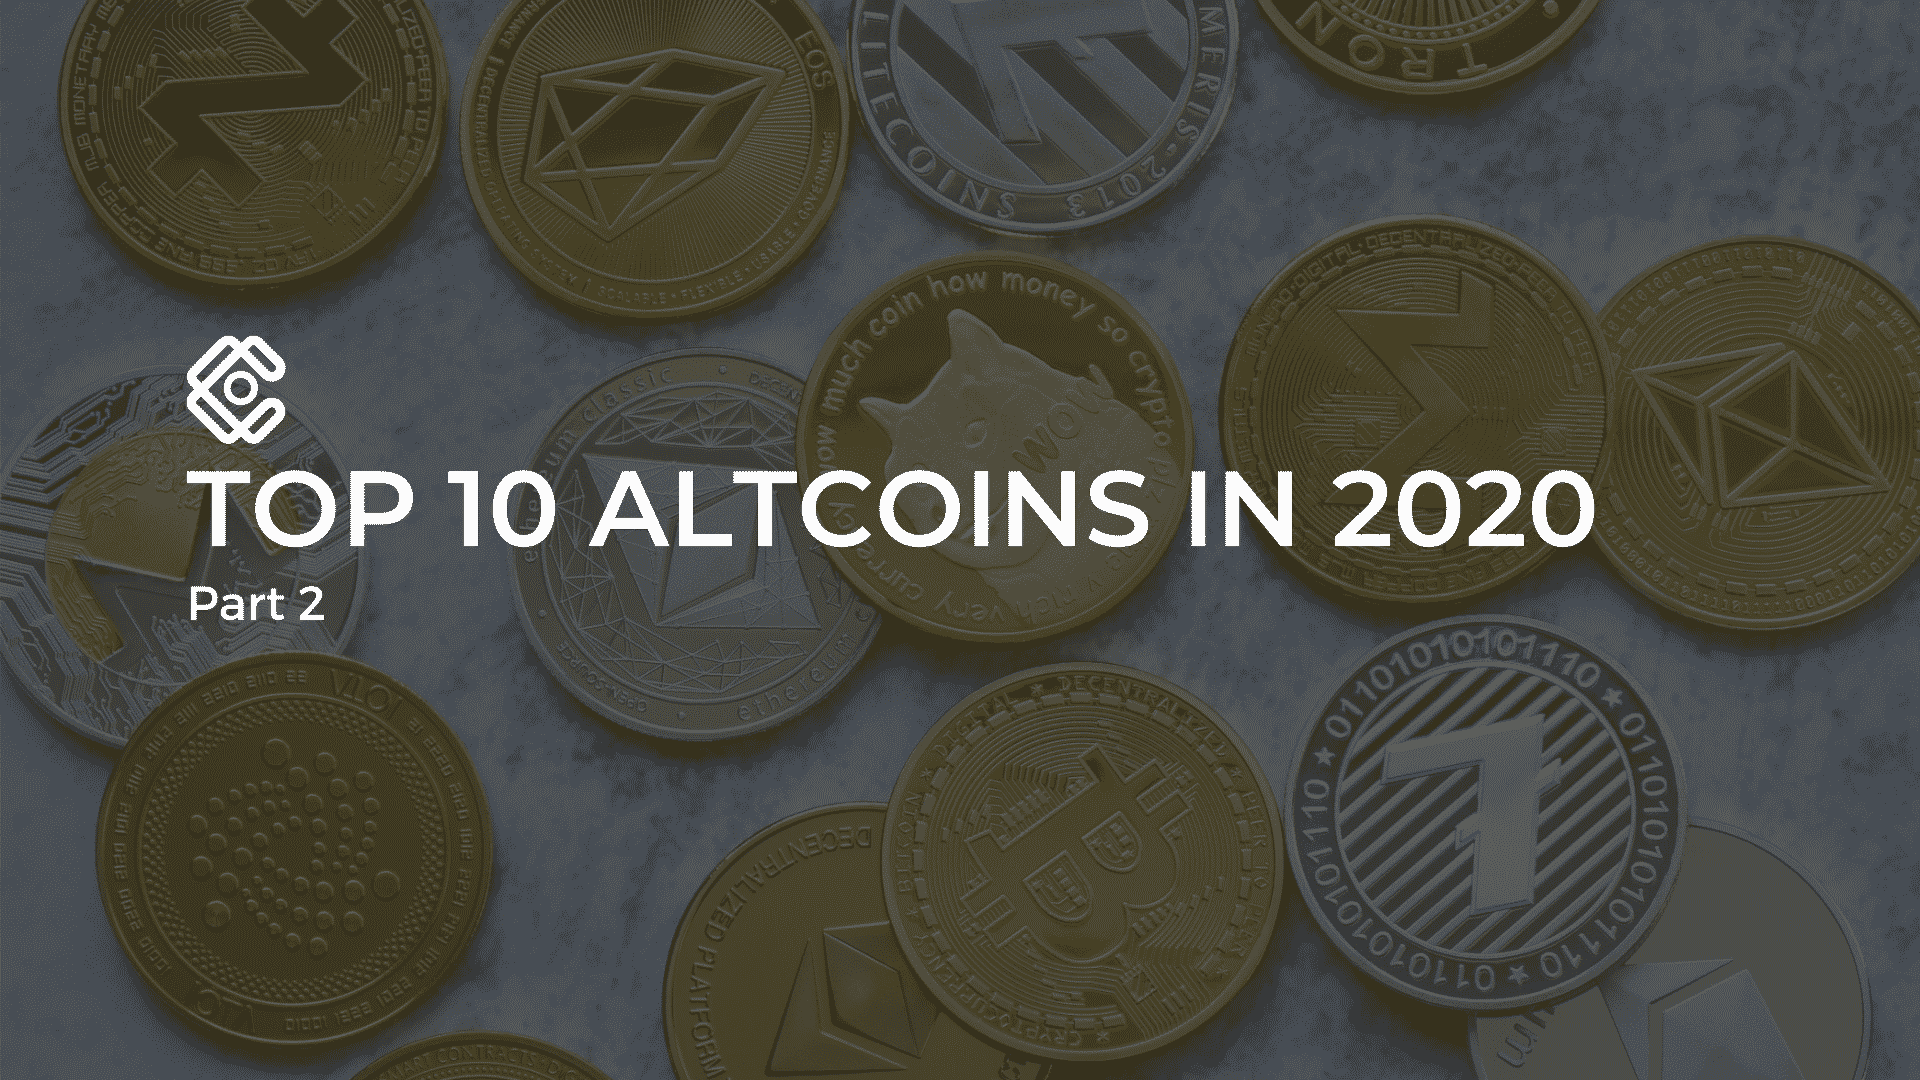 Top 10 Altcoins in 2020, part 2